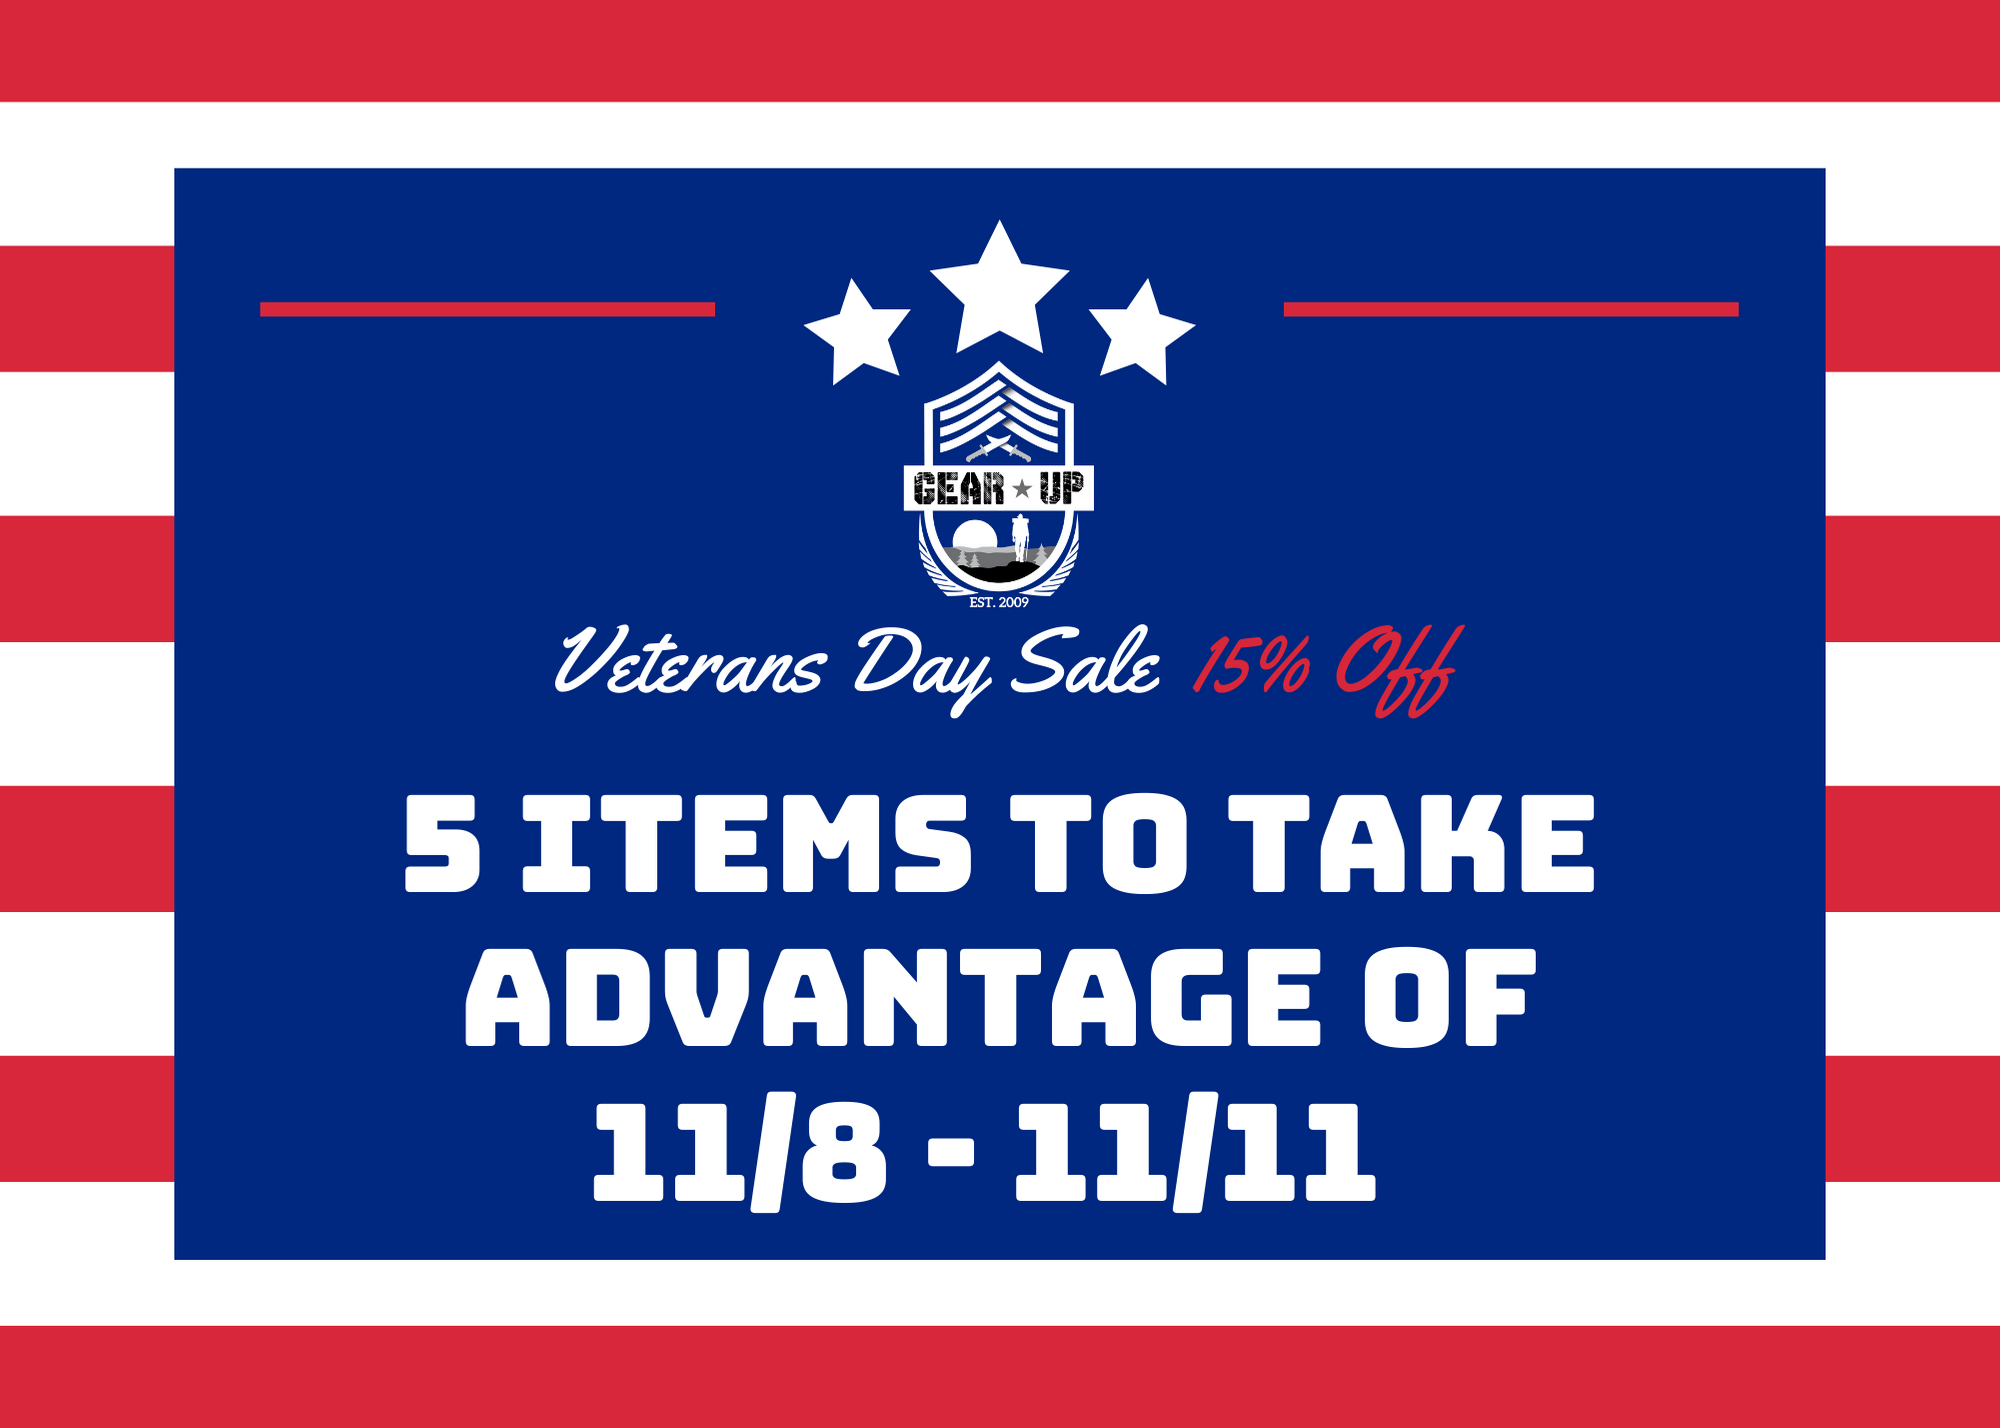 5 Items to take advantage of during our Veterans Day Sale 11/8 - 11/11